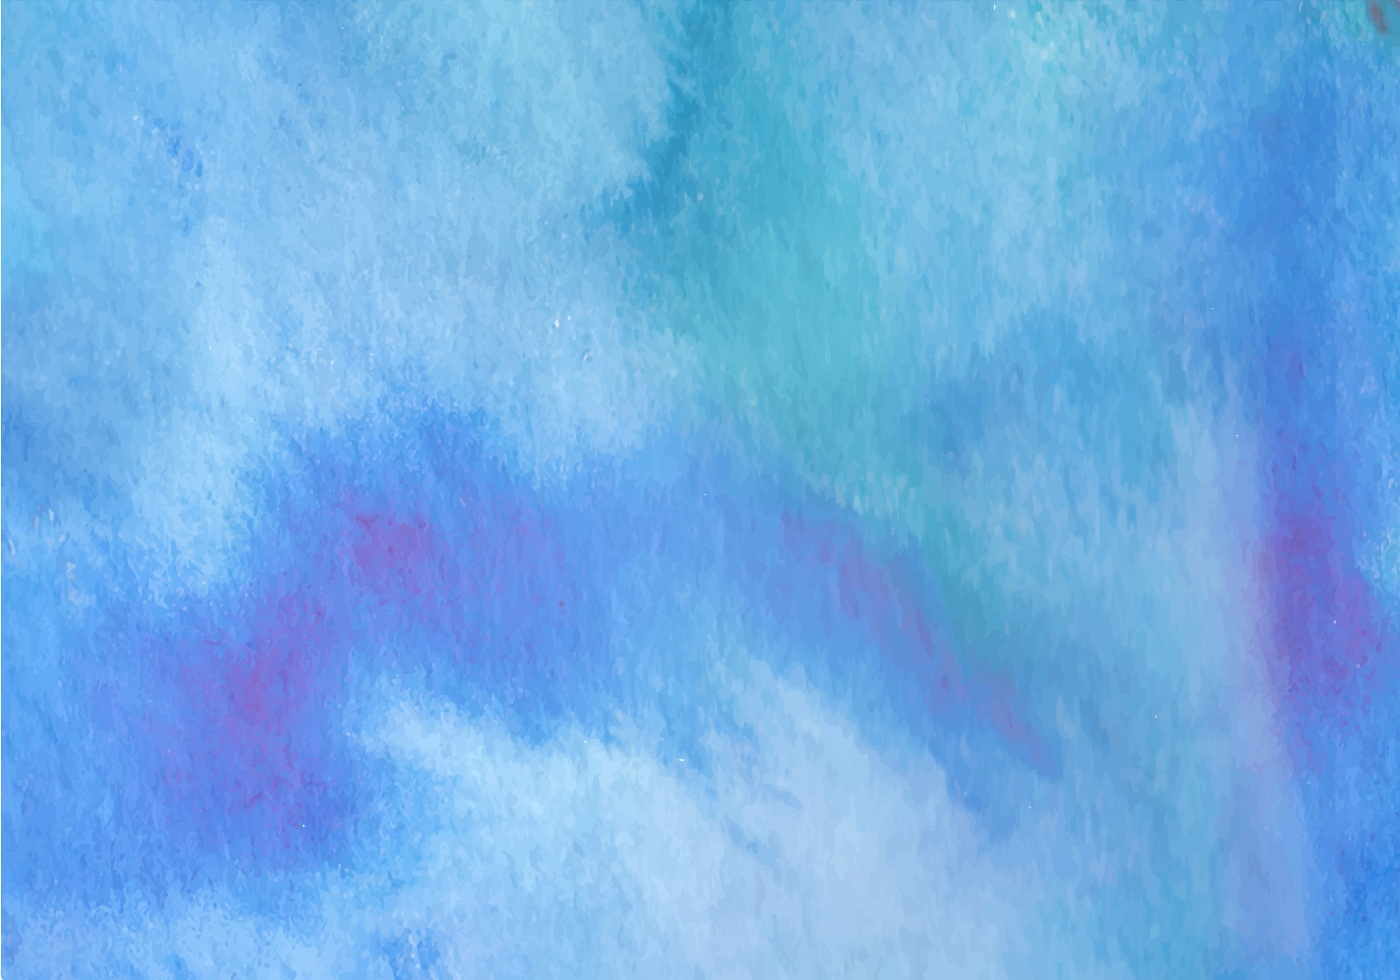 Gray Green Paint Color Blue Watercolor Free Vector Background Download Free